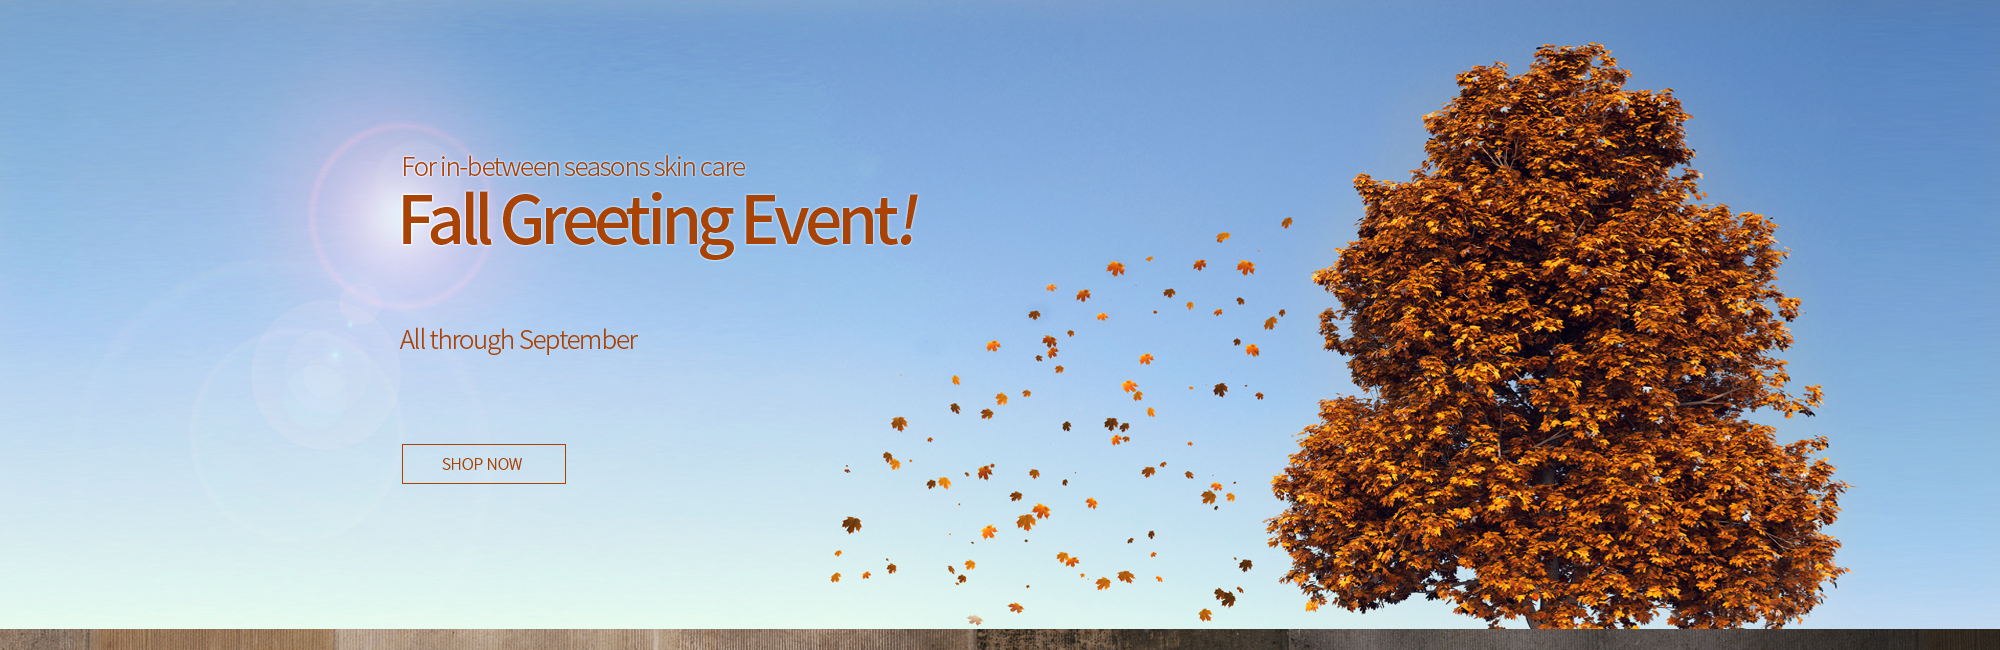 FALL GREETING EVENT